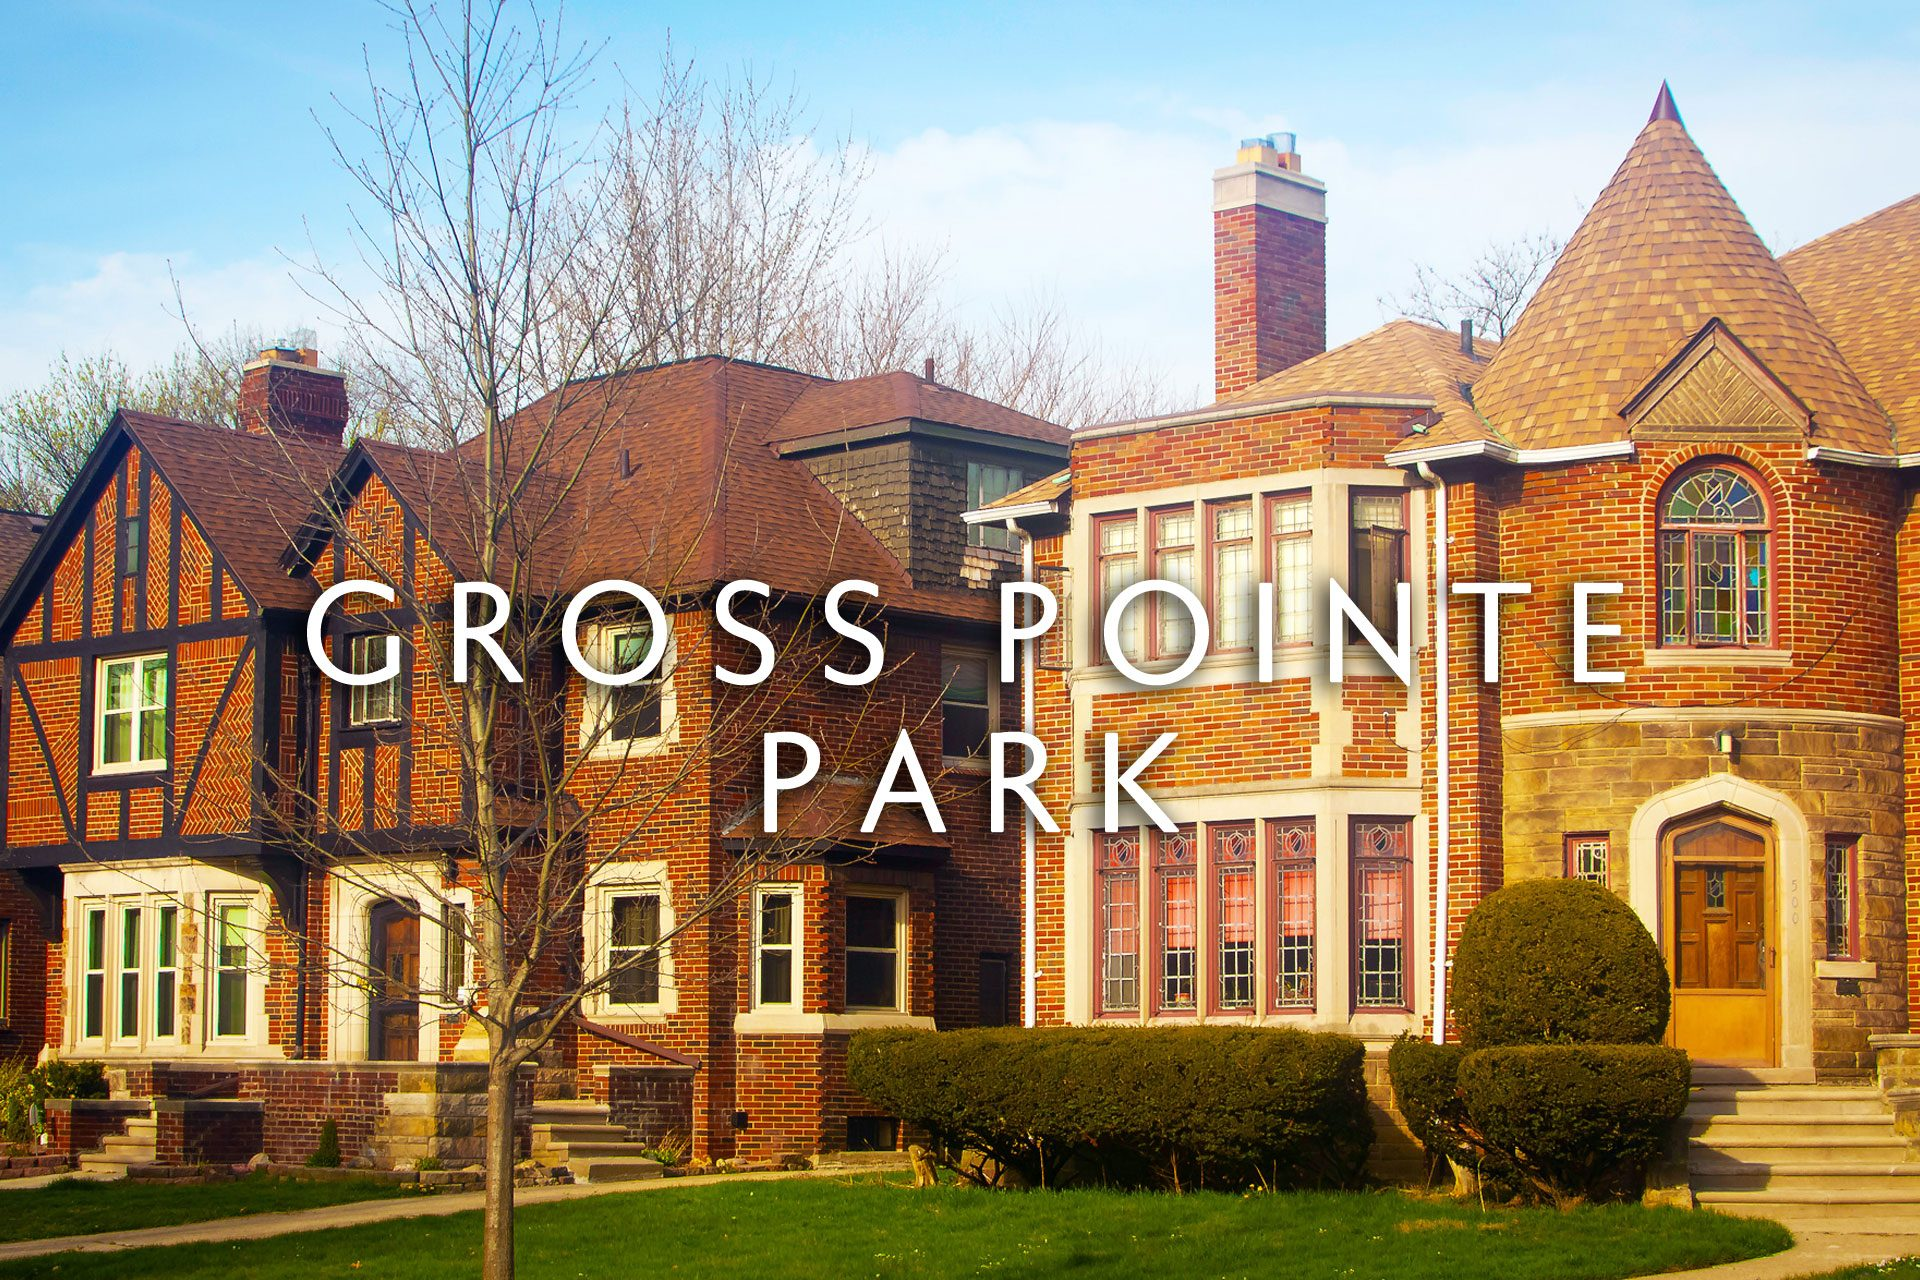 Gross Pointe Park brownstone home in Michigan